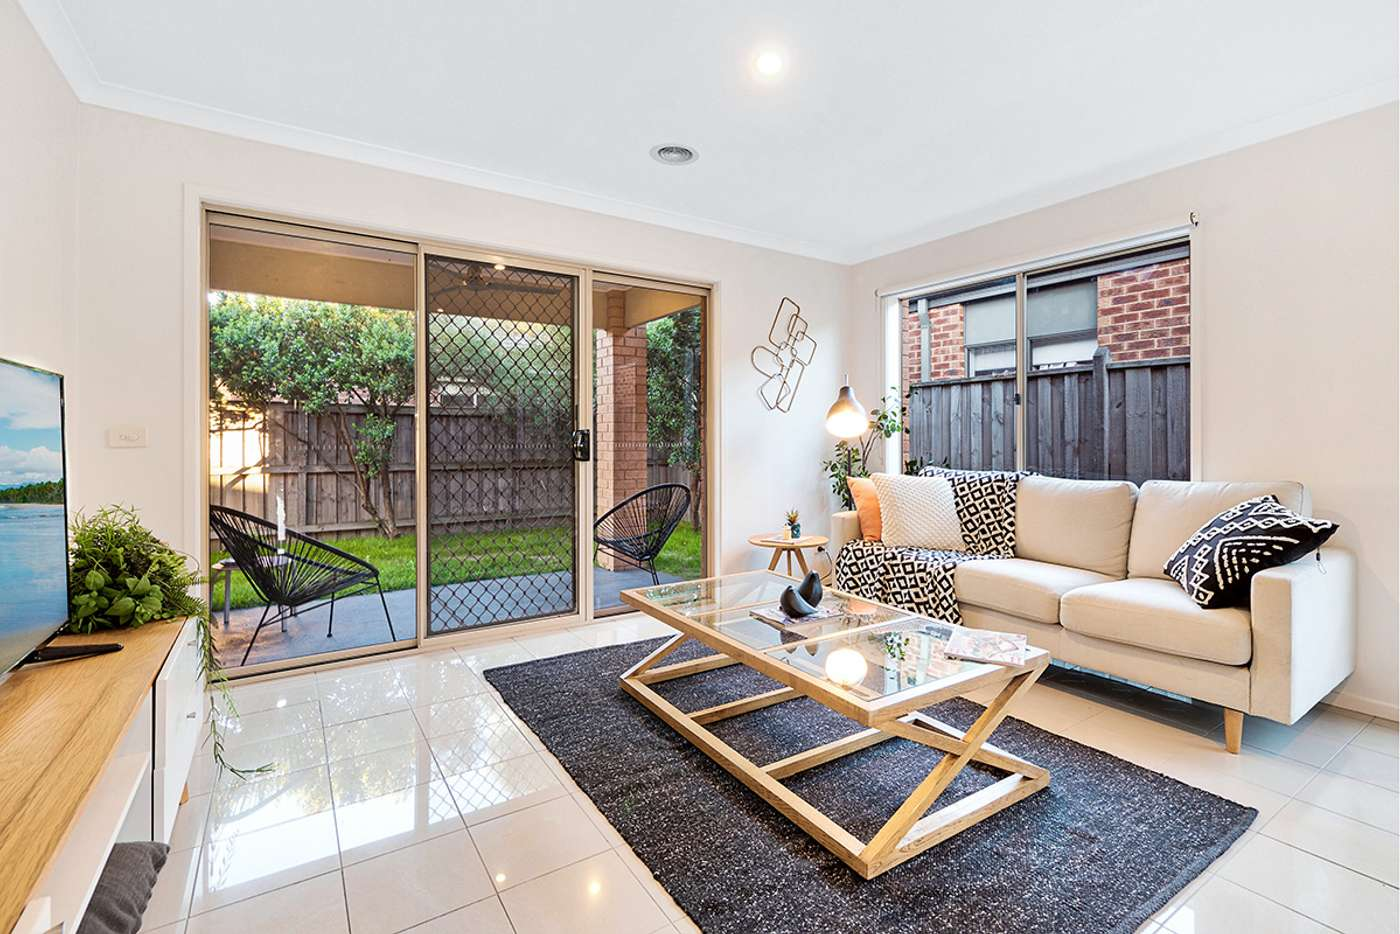 Fifth view of Homely house listing, 14 Boland Drive, Lyndhurst VIC 3975